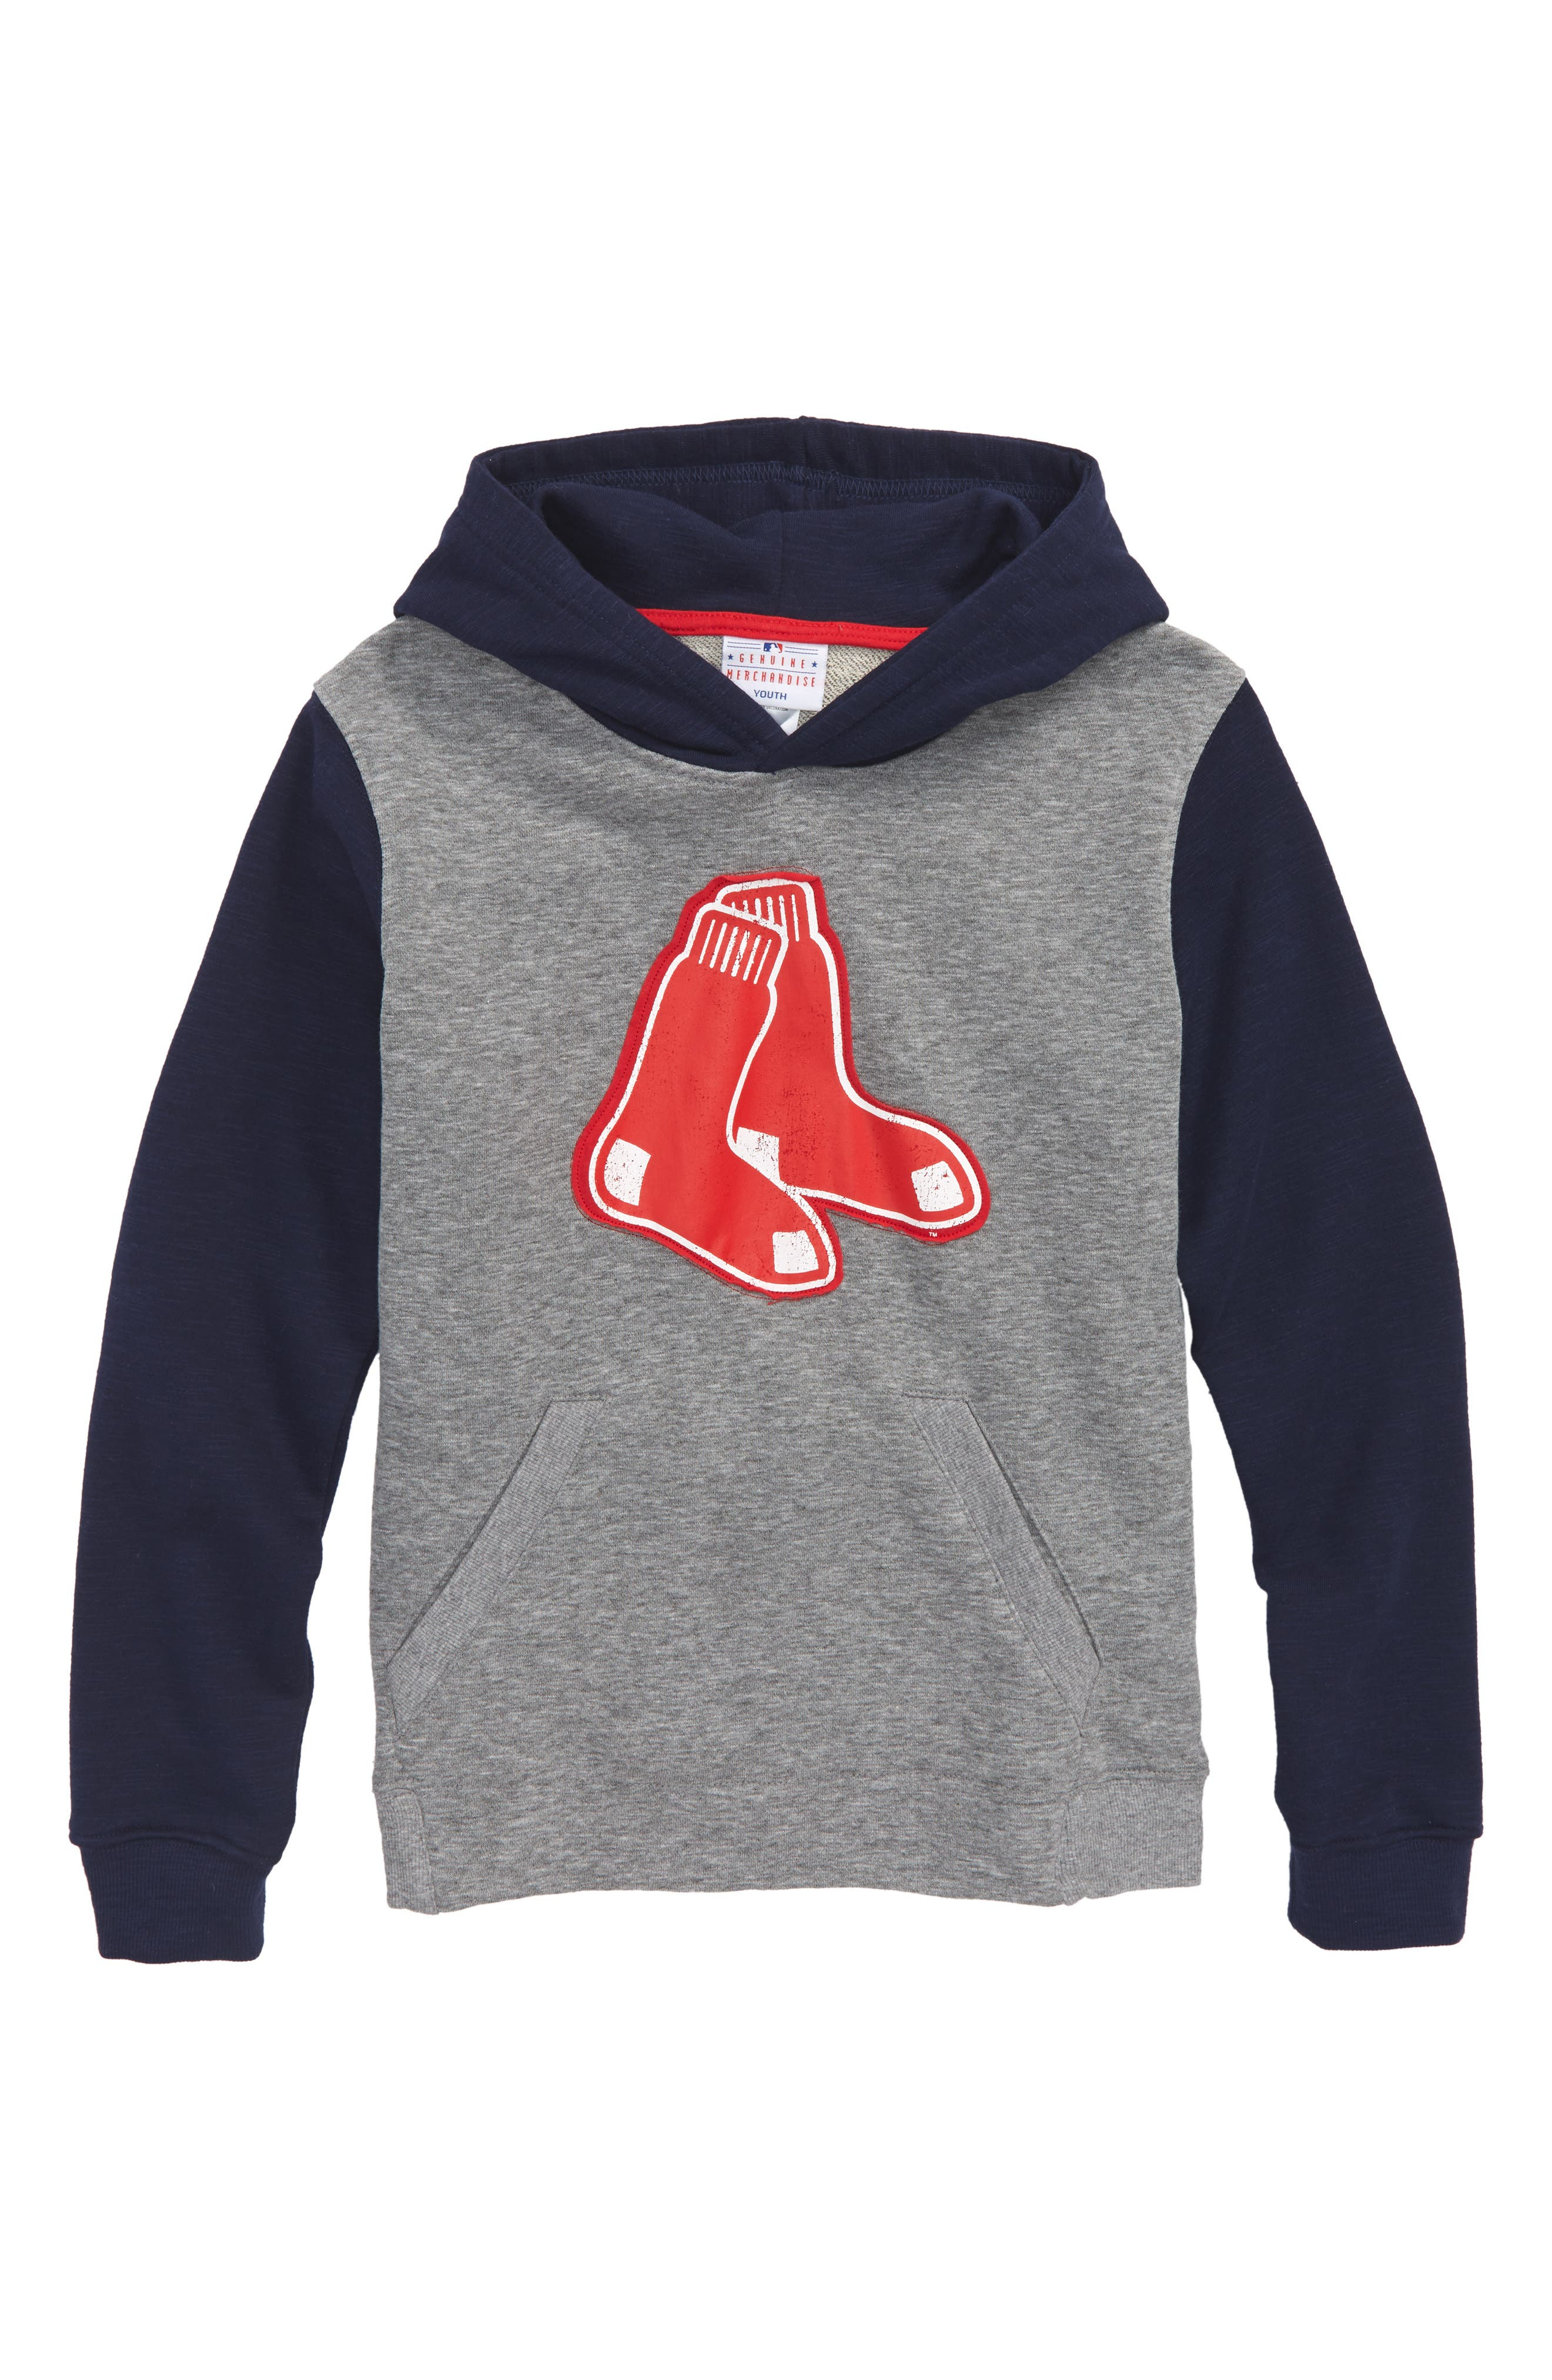 New Beginnings - Boston Red Sox Pullover Hoodie,                             Main thumbnail 1, color,                             020